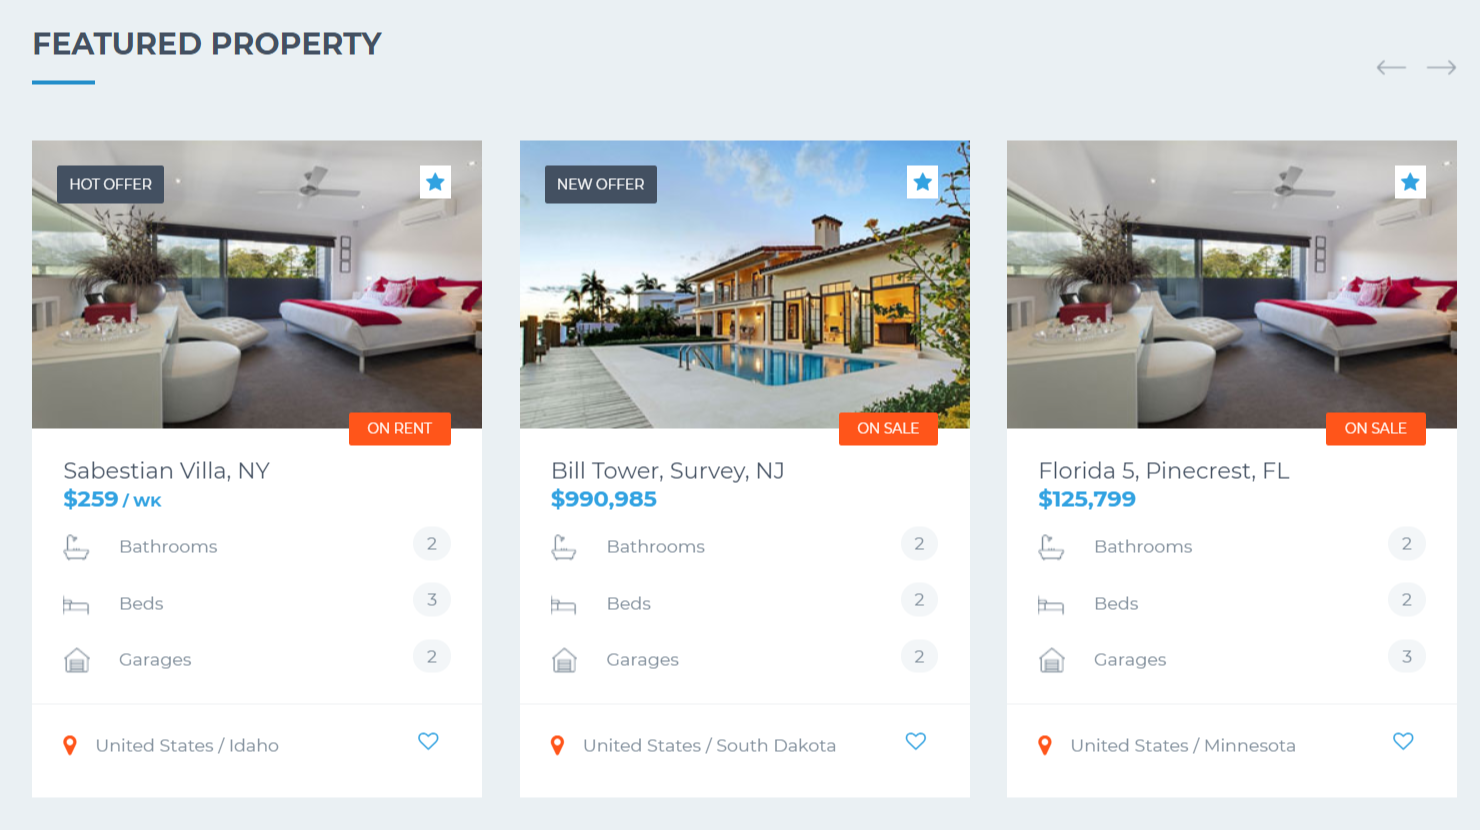 Dreamvilla WordPress theme - Featured Property section